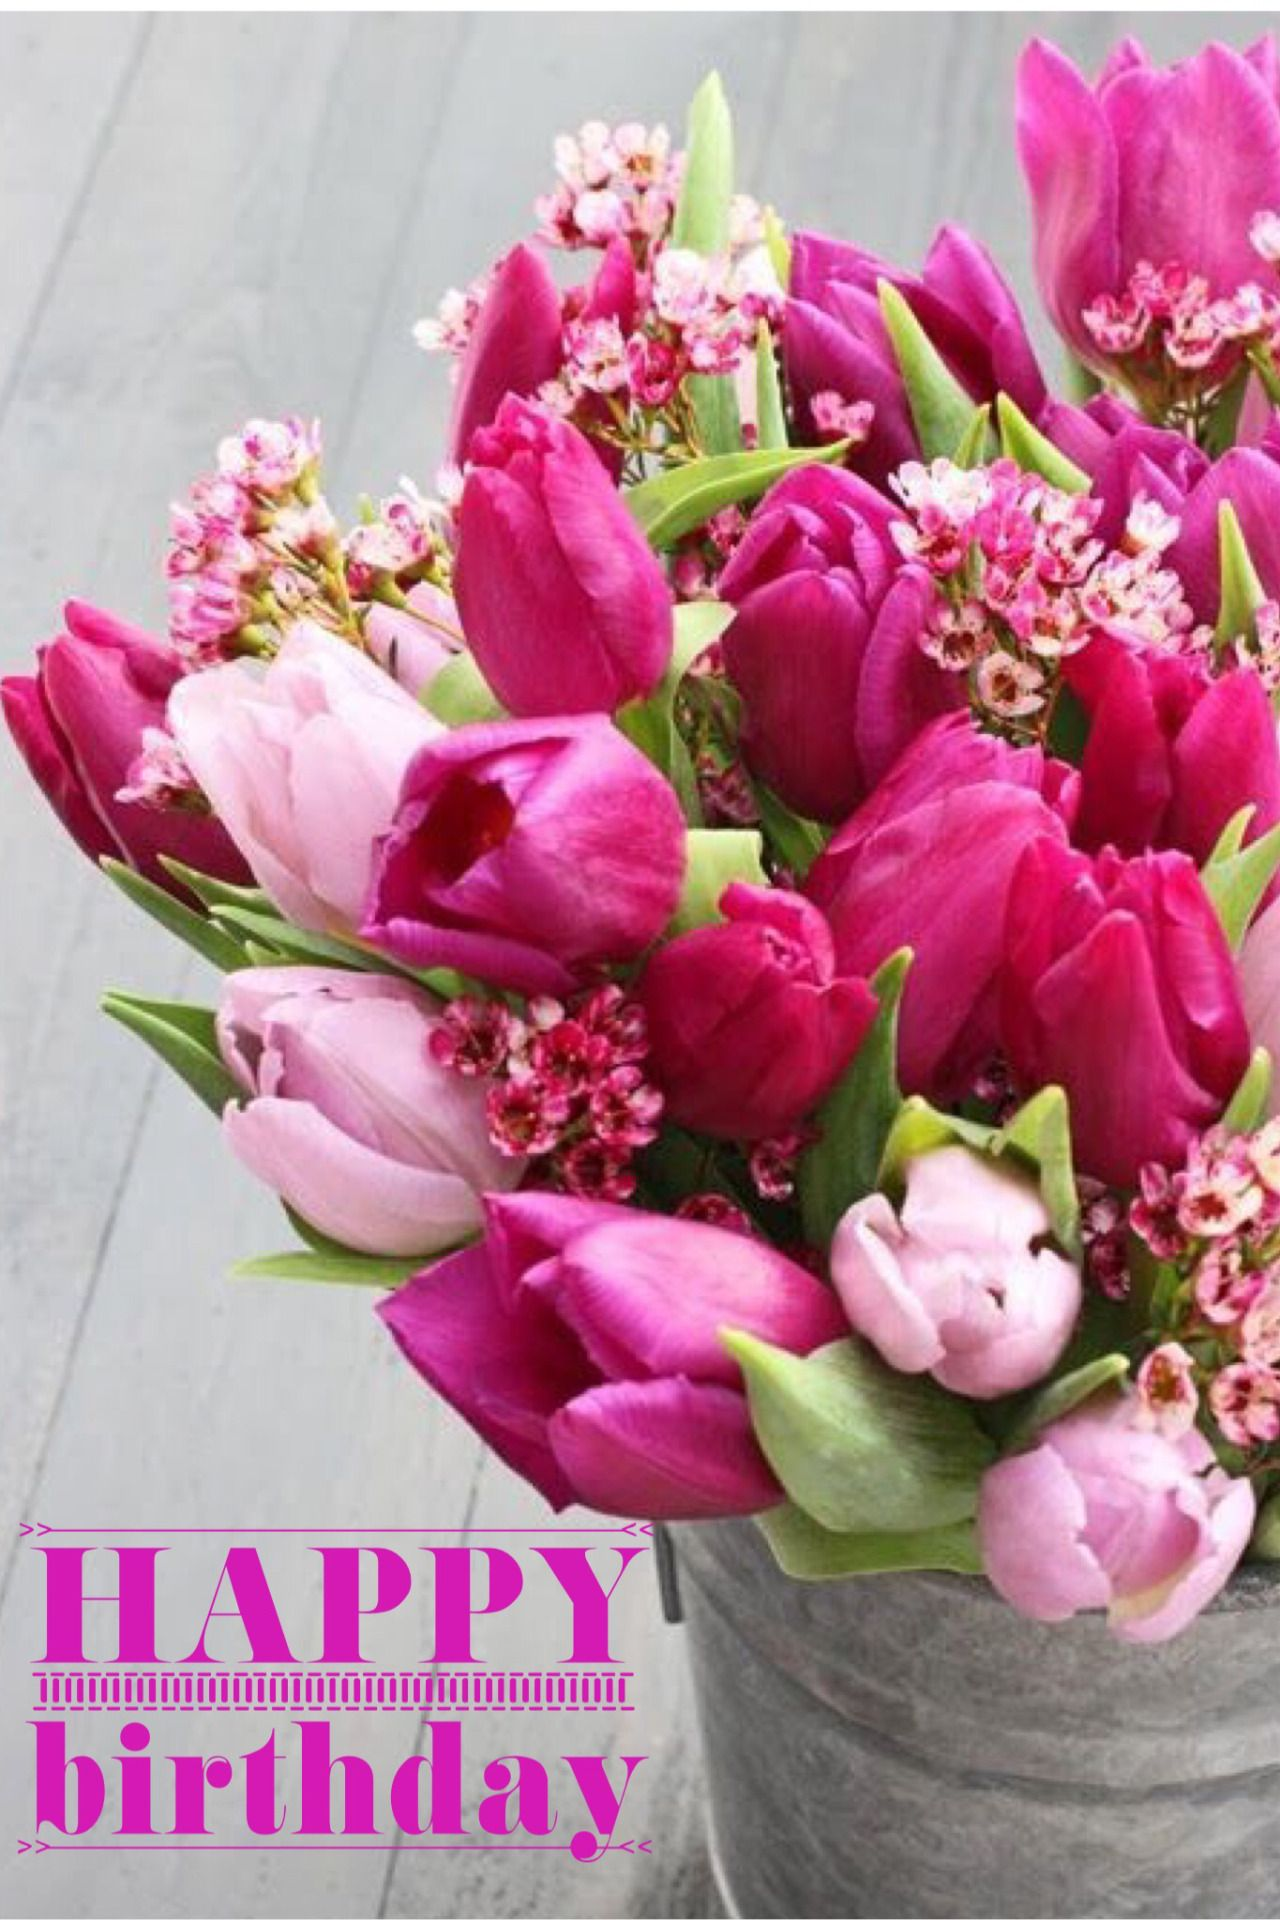 Happy Birthday Everything Pink Pinterest Flowers Tulips And